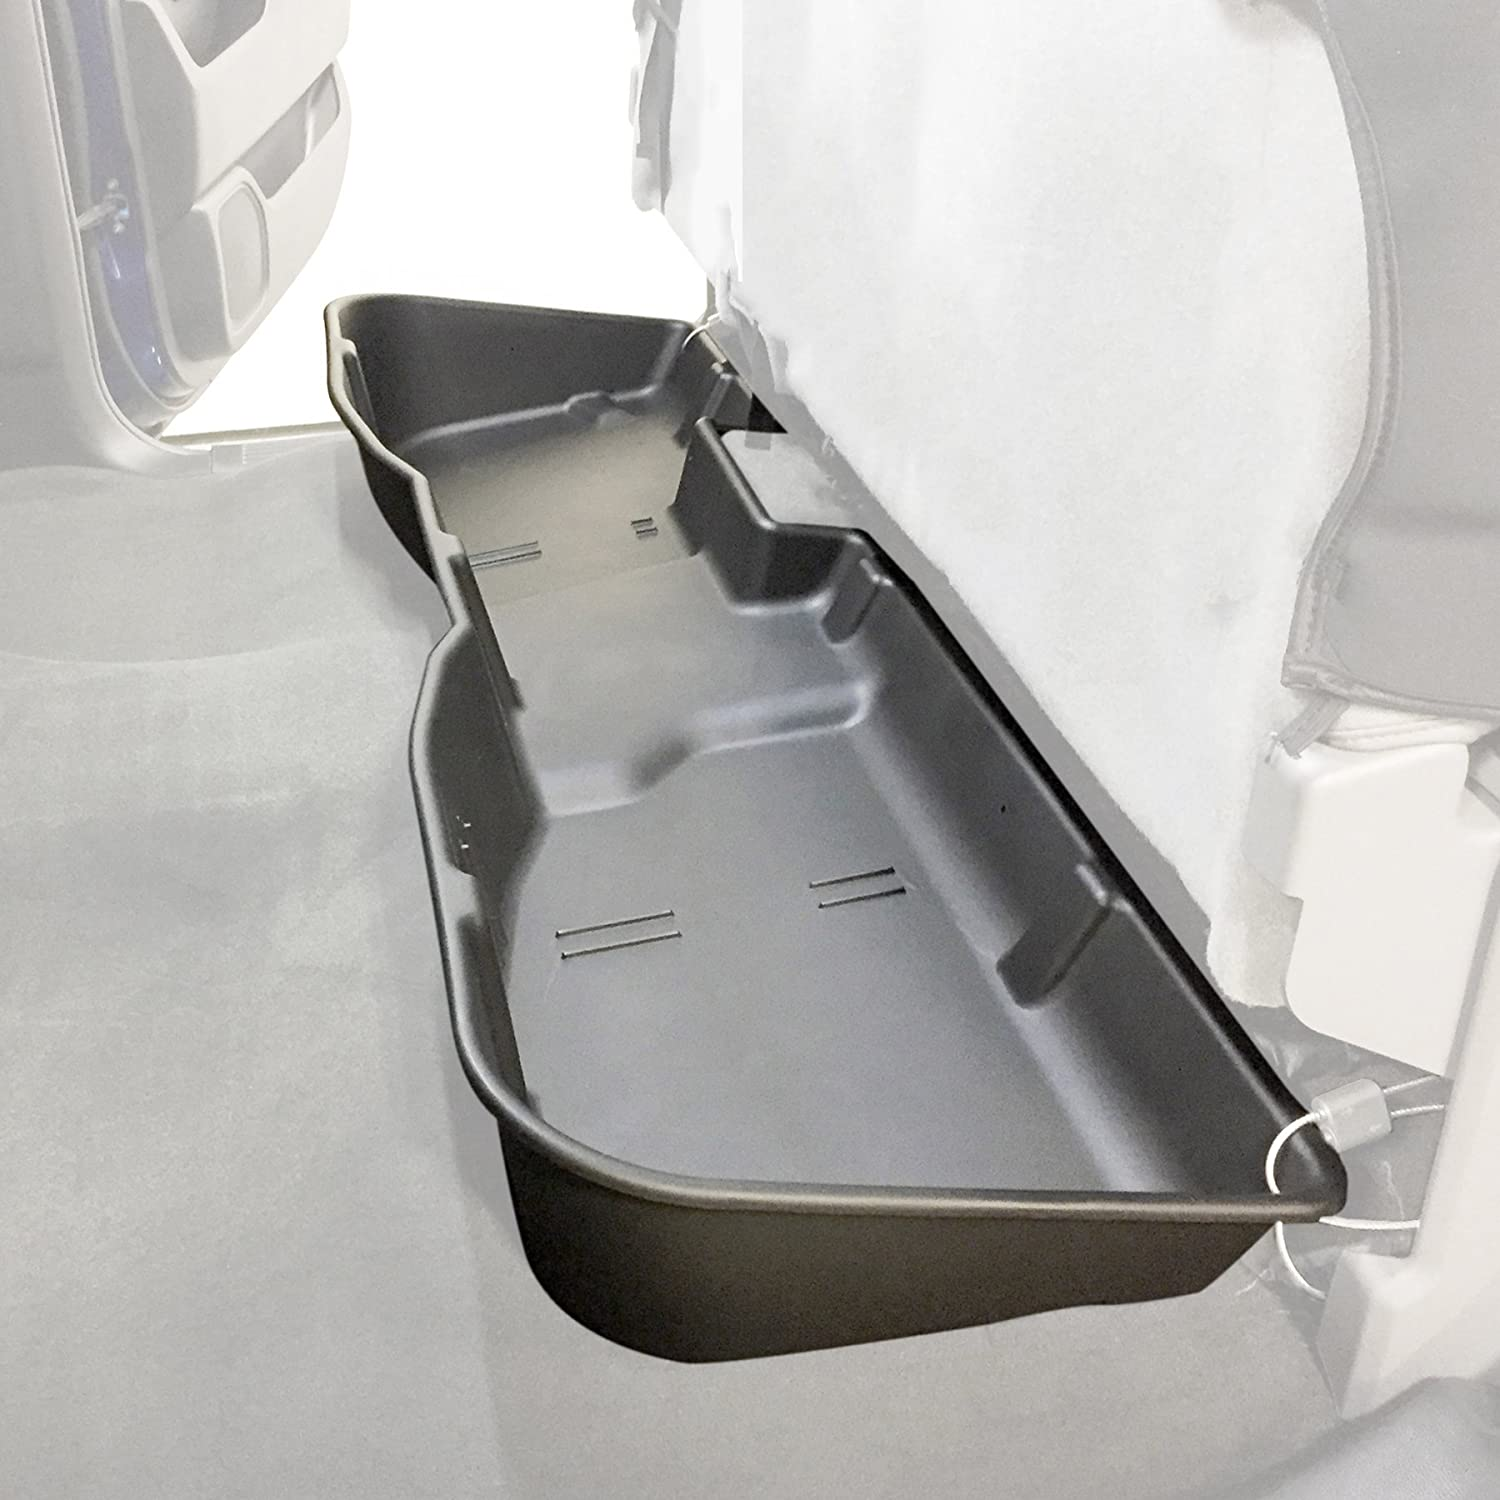 Under Seat Storage Box Fits 2007 2018 Compatible With 2011 Polaris Switch Back 600 Wiring Diagram Chevy Silverado And Gmc Sierra 1500 2500hd 3500hd Crew Cab Light Duty Heavy